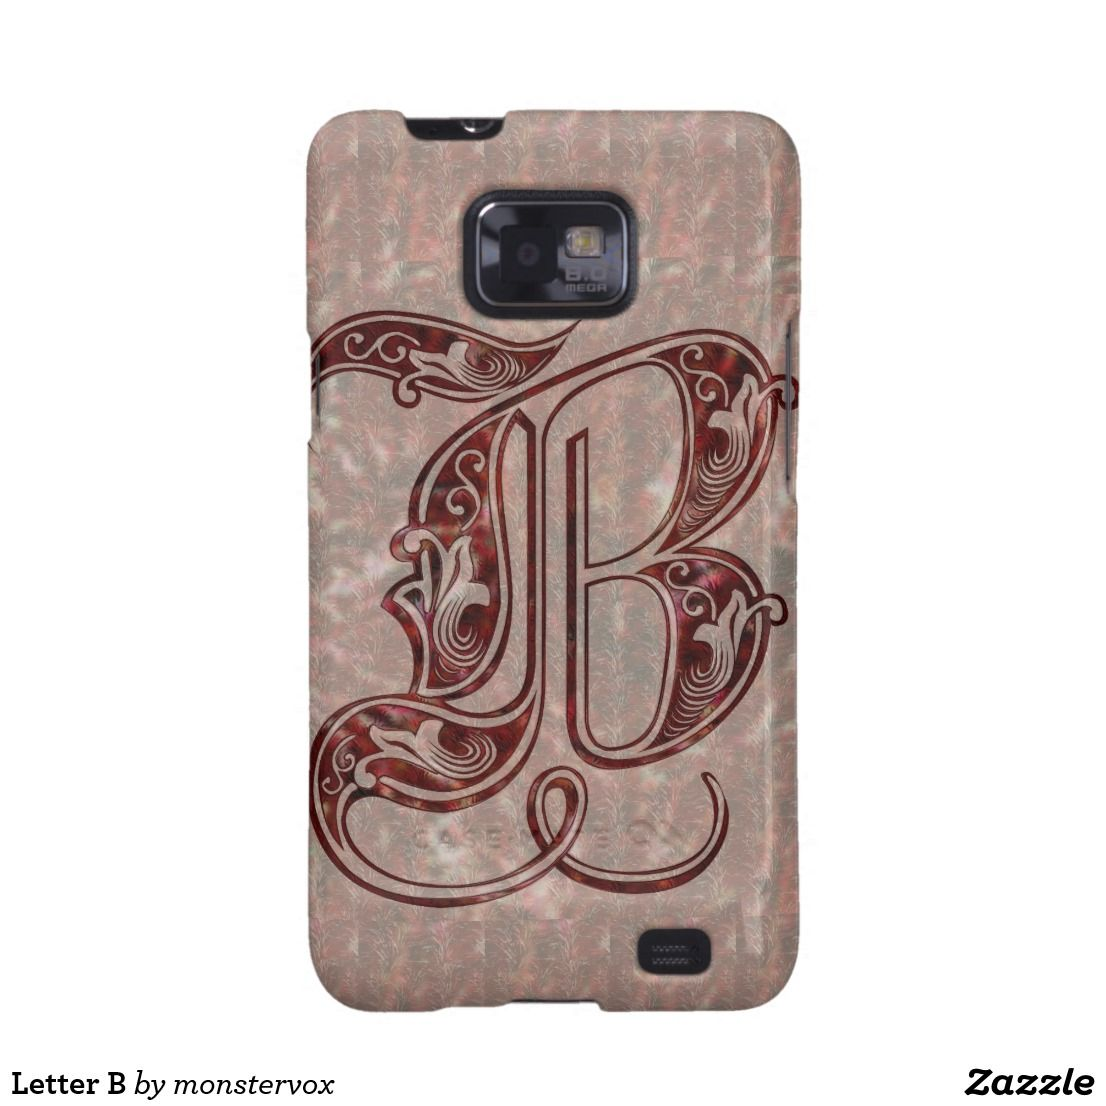 Letter B Galaxy Sii Cover Alphabet Letter Art Mobile Phone